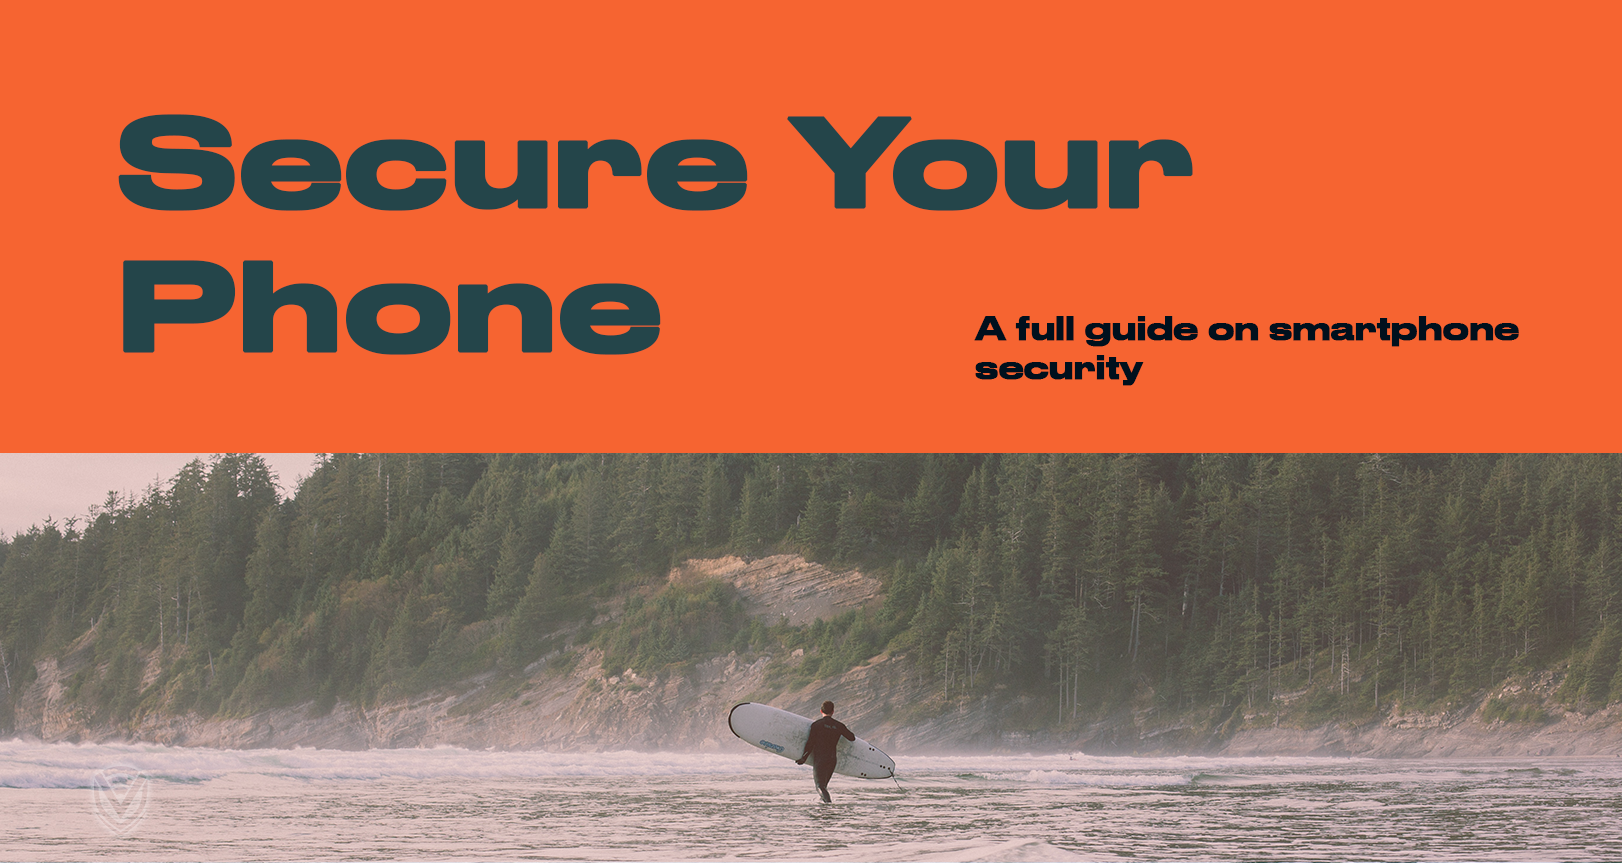 A Thorough Guide on Smartphone Security